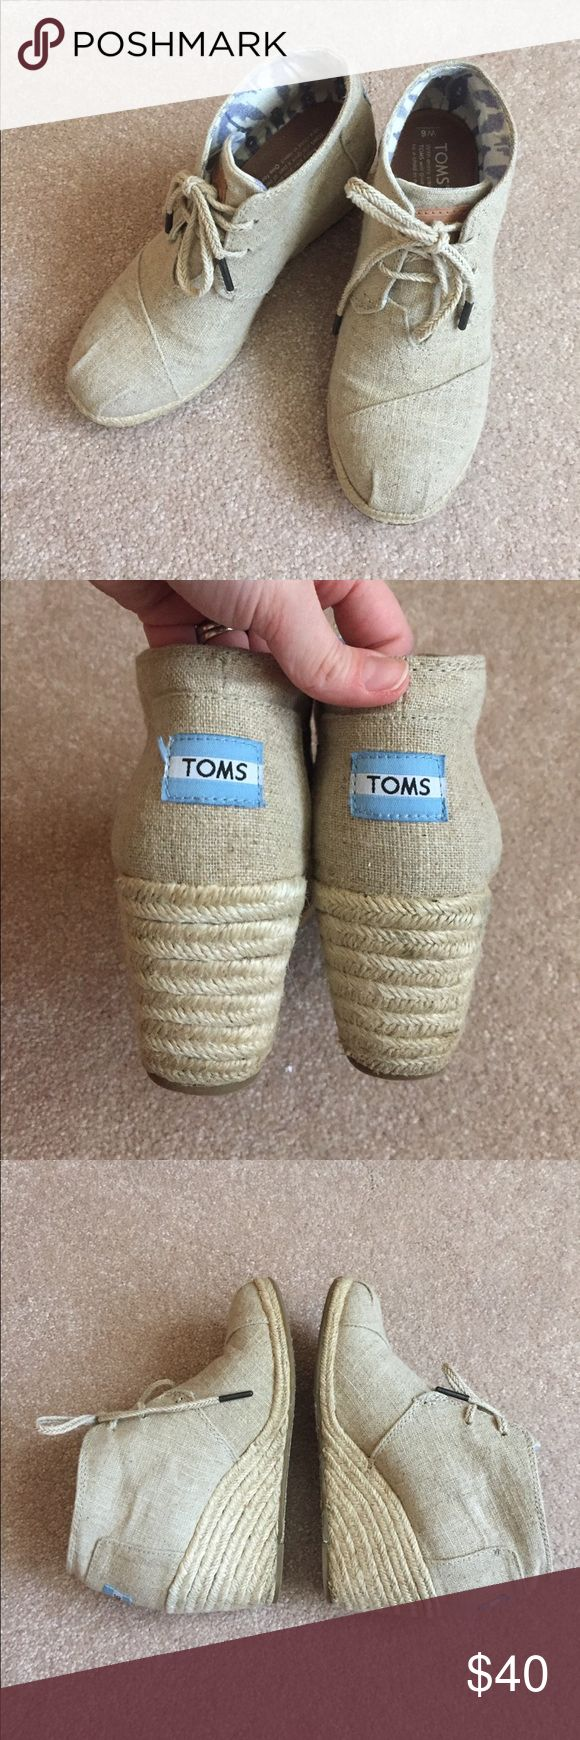 Original TOMS wedge booties EUC. Worn many times but still basically like new. These are the original booties from several years ago TOMS Shoes Wedges